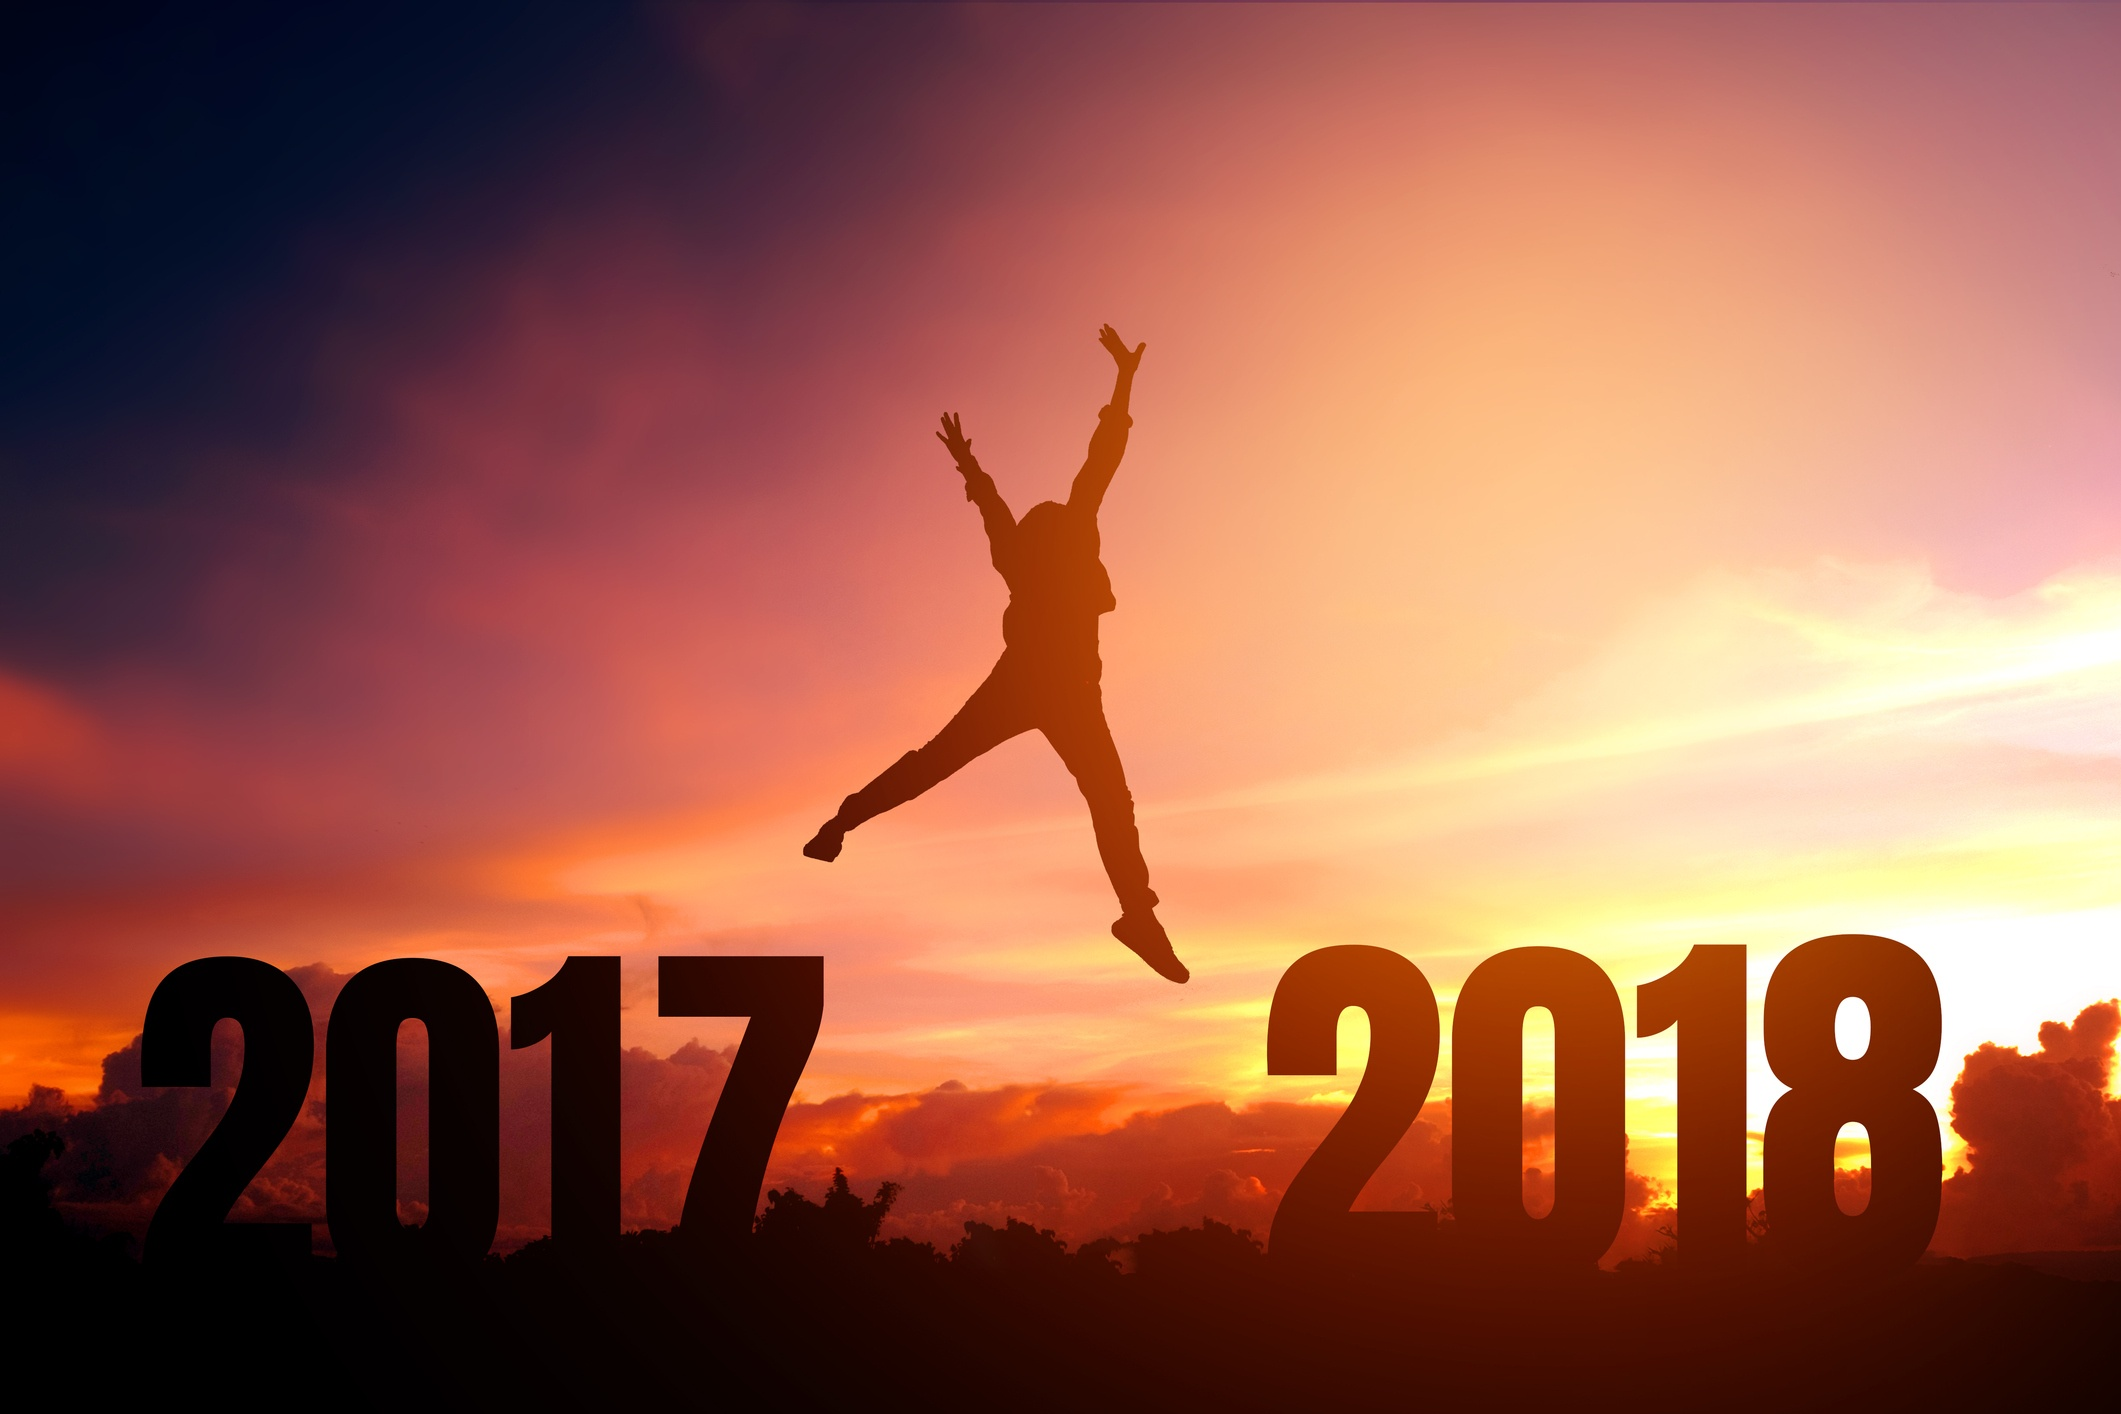 2018 is your year to succeed - if that is your choice!